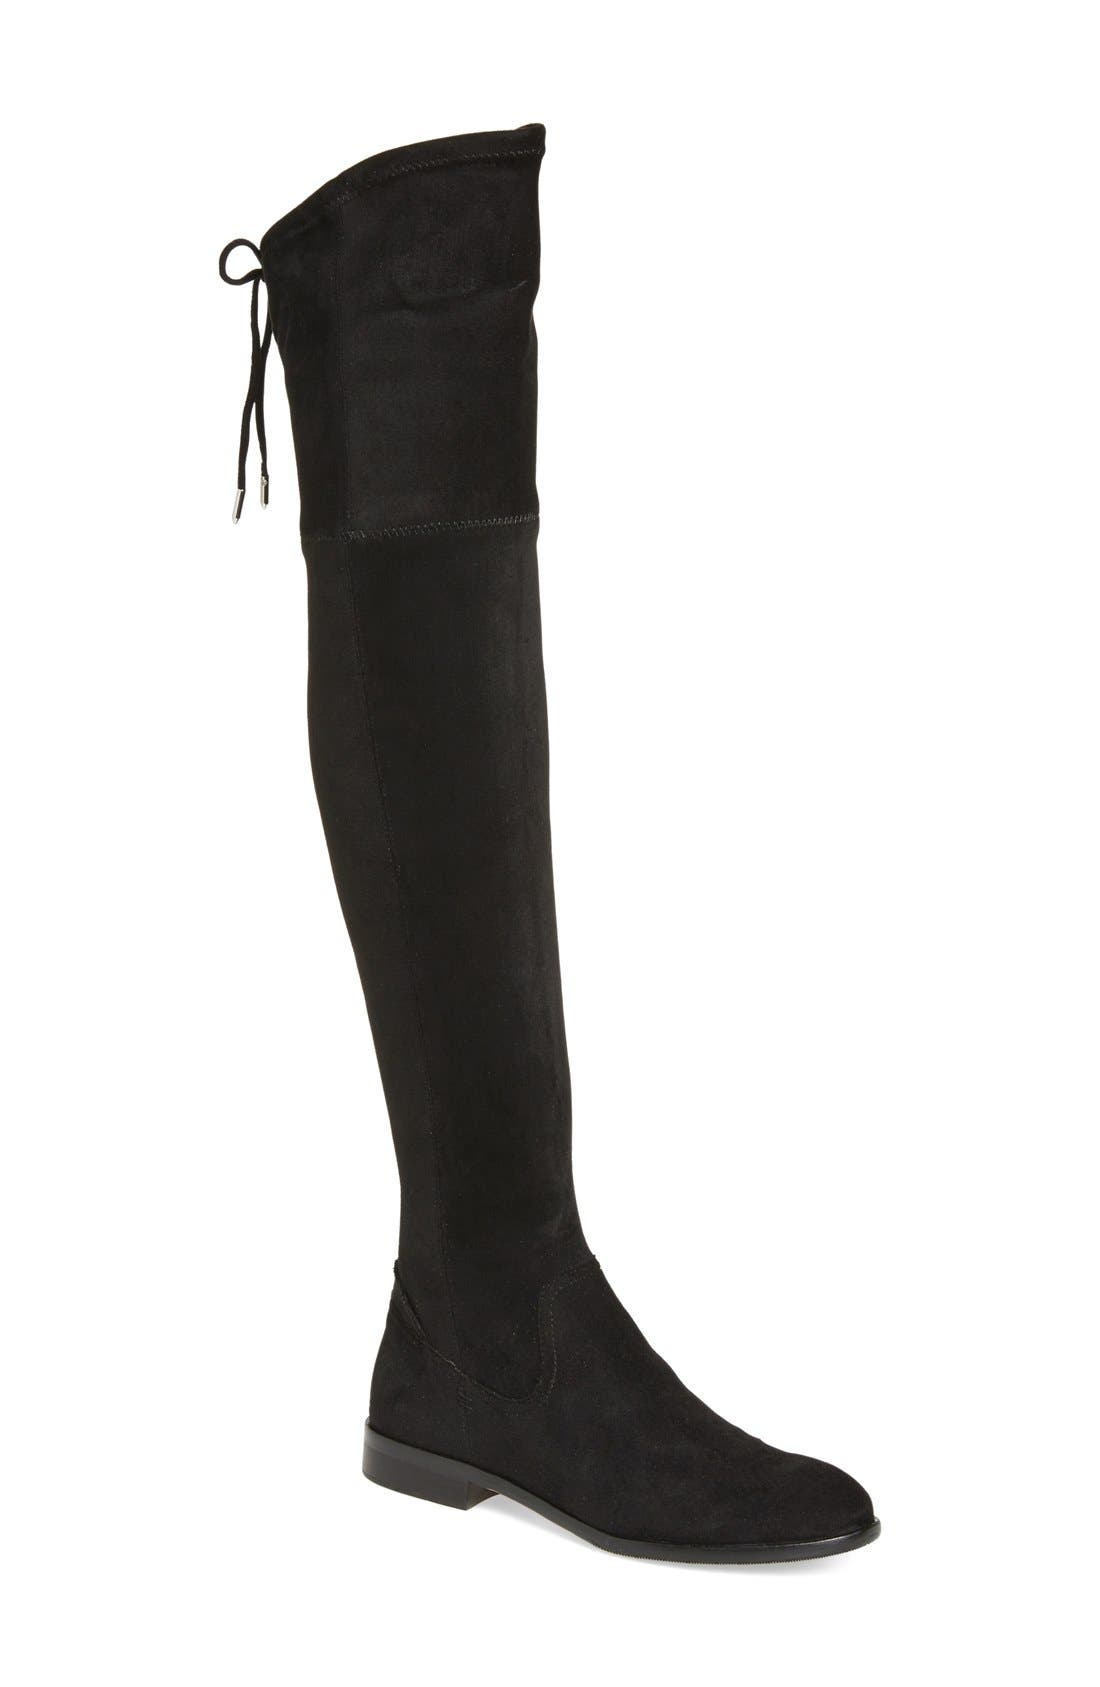 'Neely' Over the Knee Boot,                             Main thumbnail 1, color,                             Black Stretch Suede